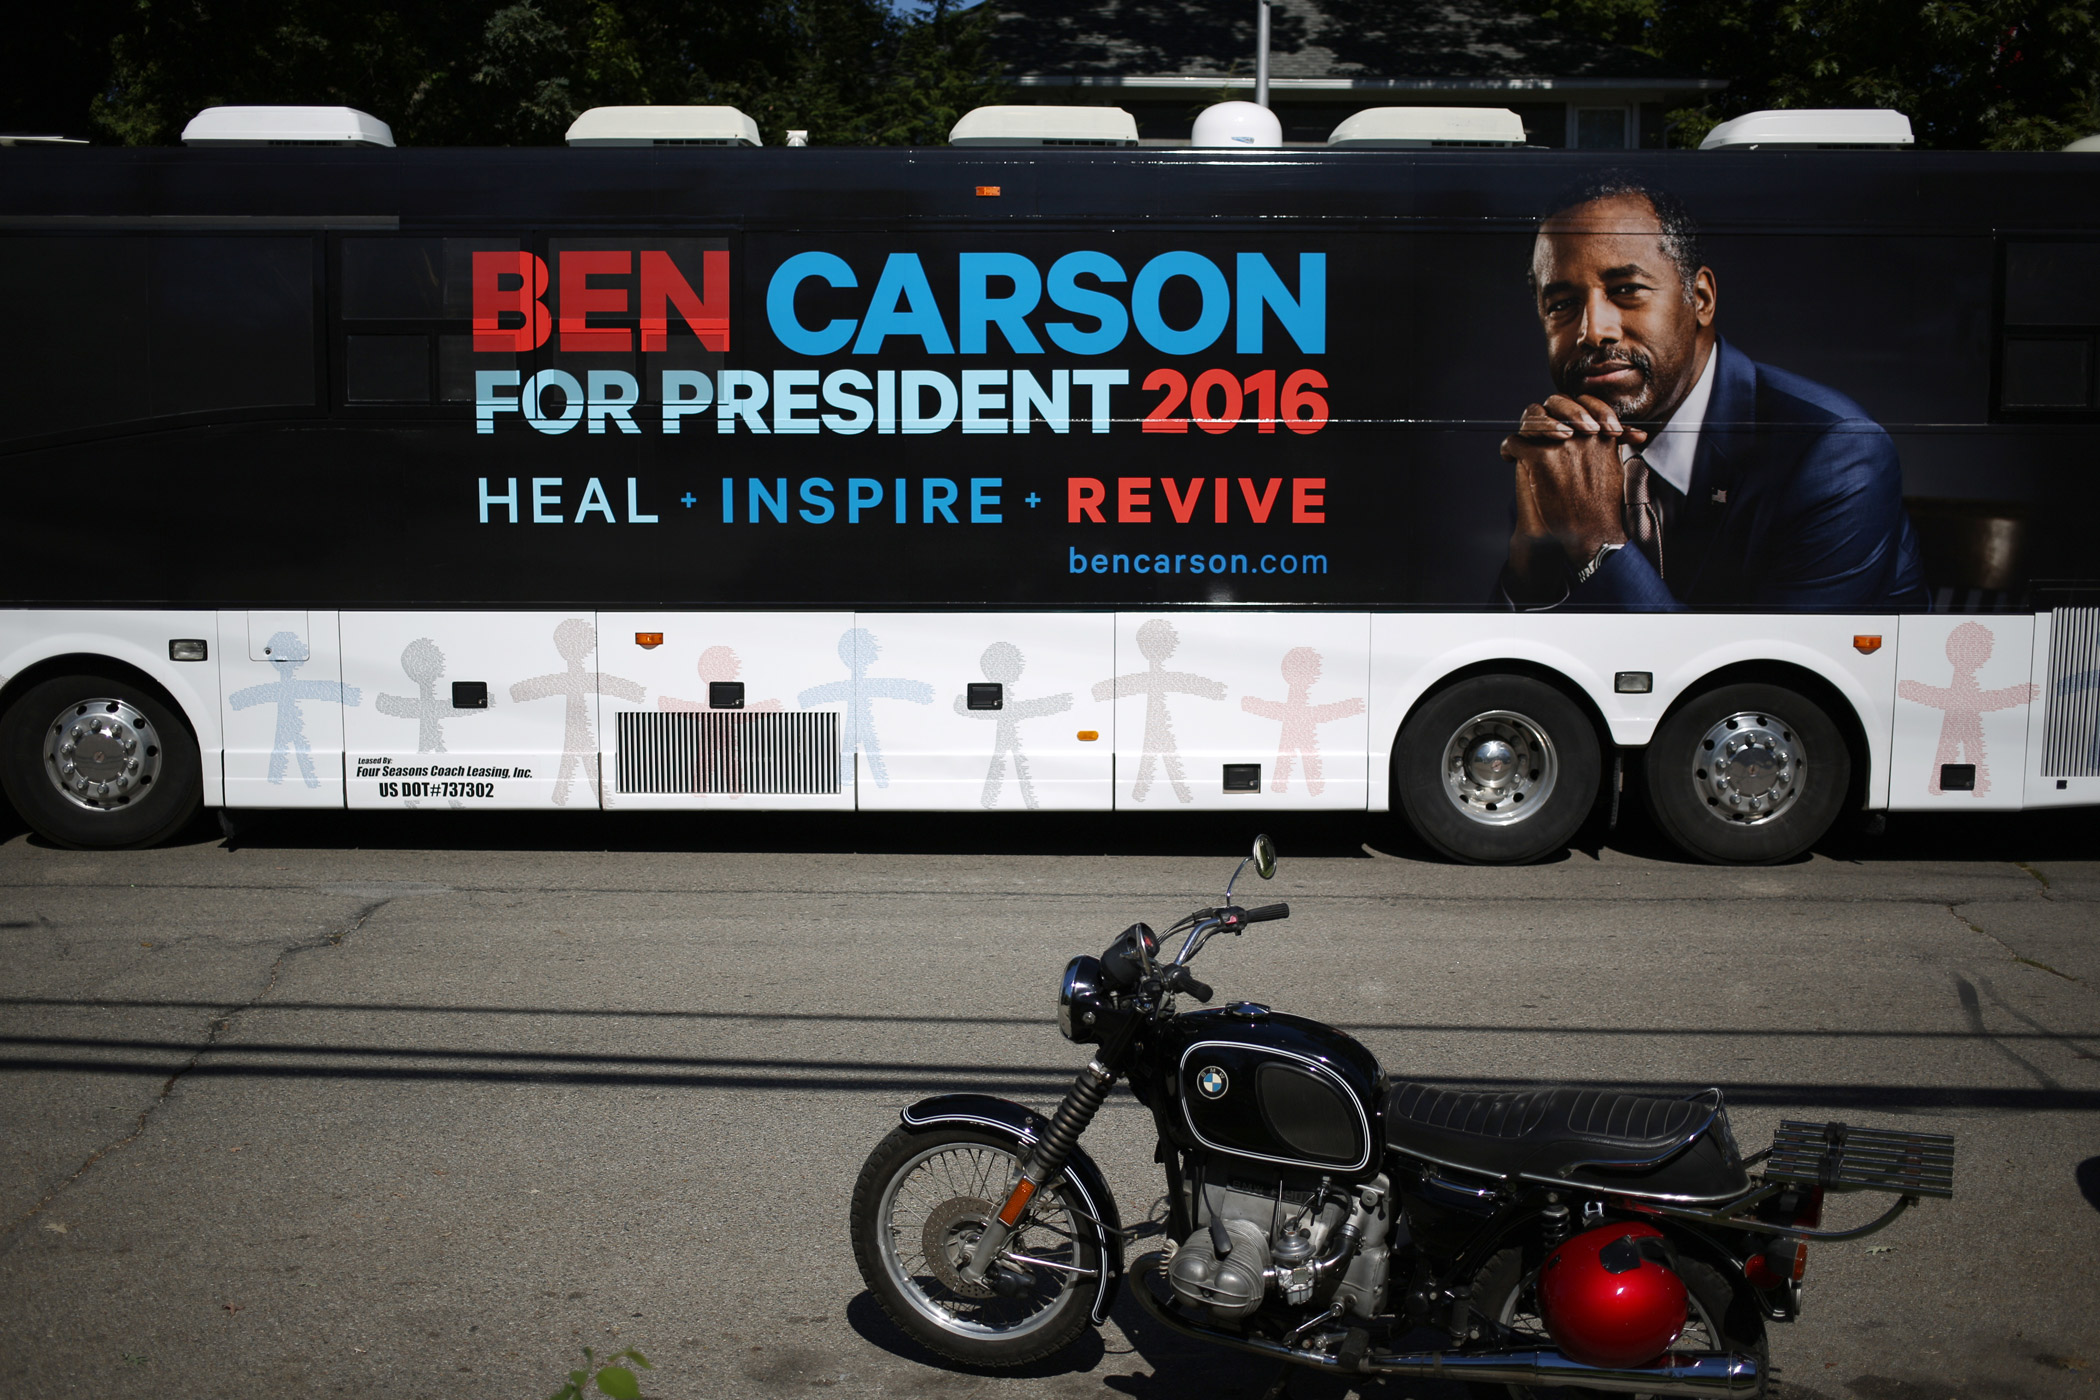 A campaign bus bearing the likeness of Republican presidential candidate Ben Carson is parked near a campaign stop in Jackson, Mich. on Sept. 23, 2015.